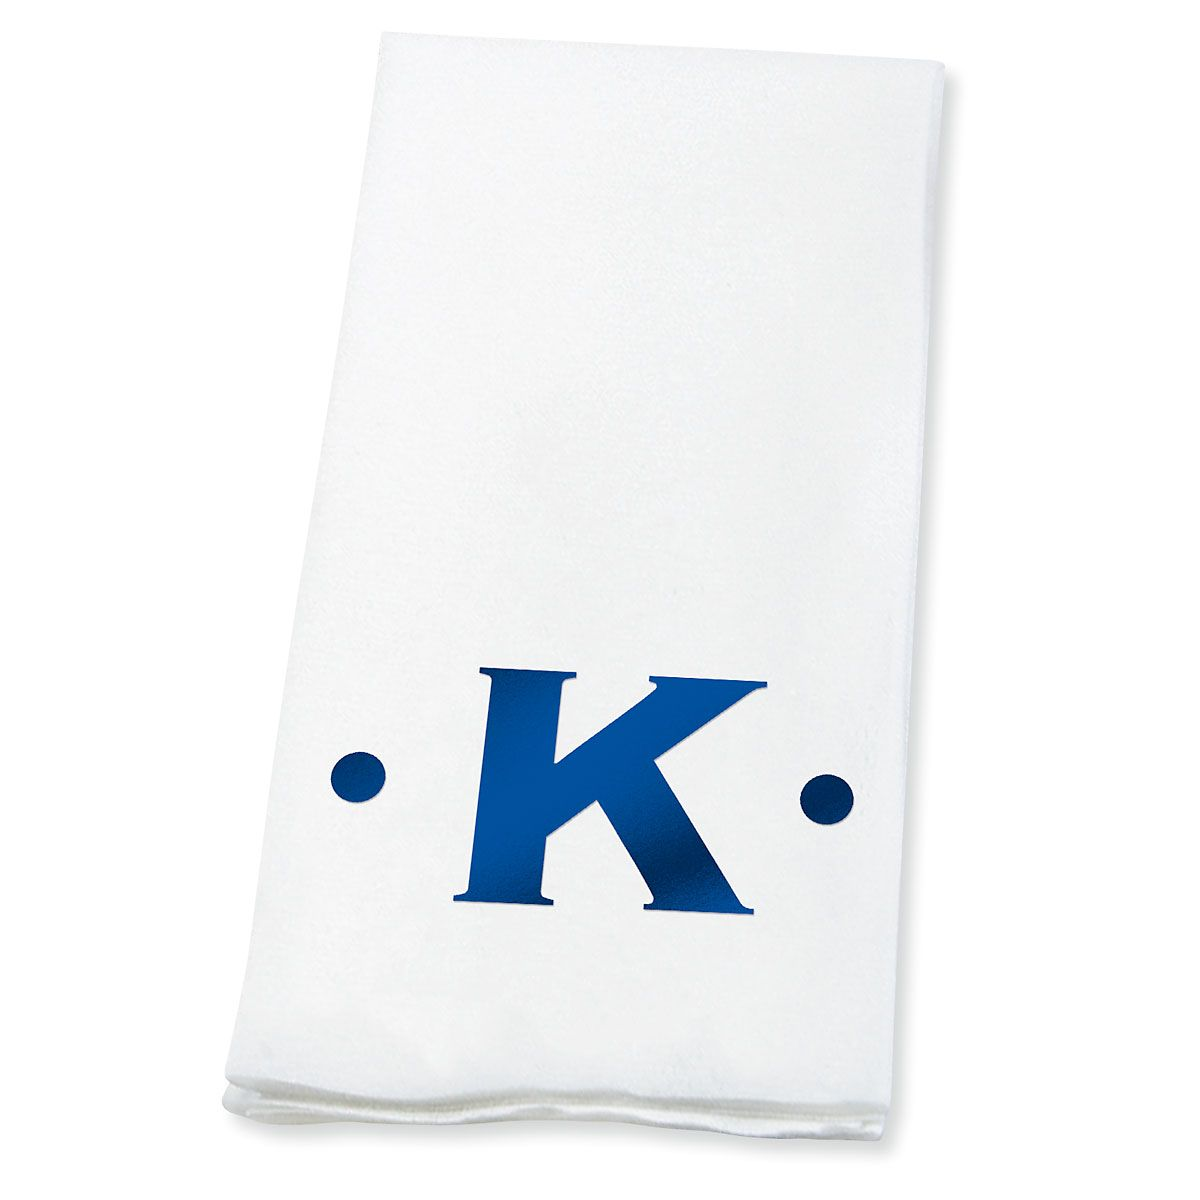 Dot Initial Foil-Stamped Disposable Hand Towels